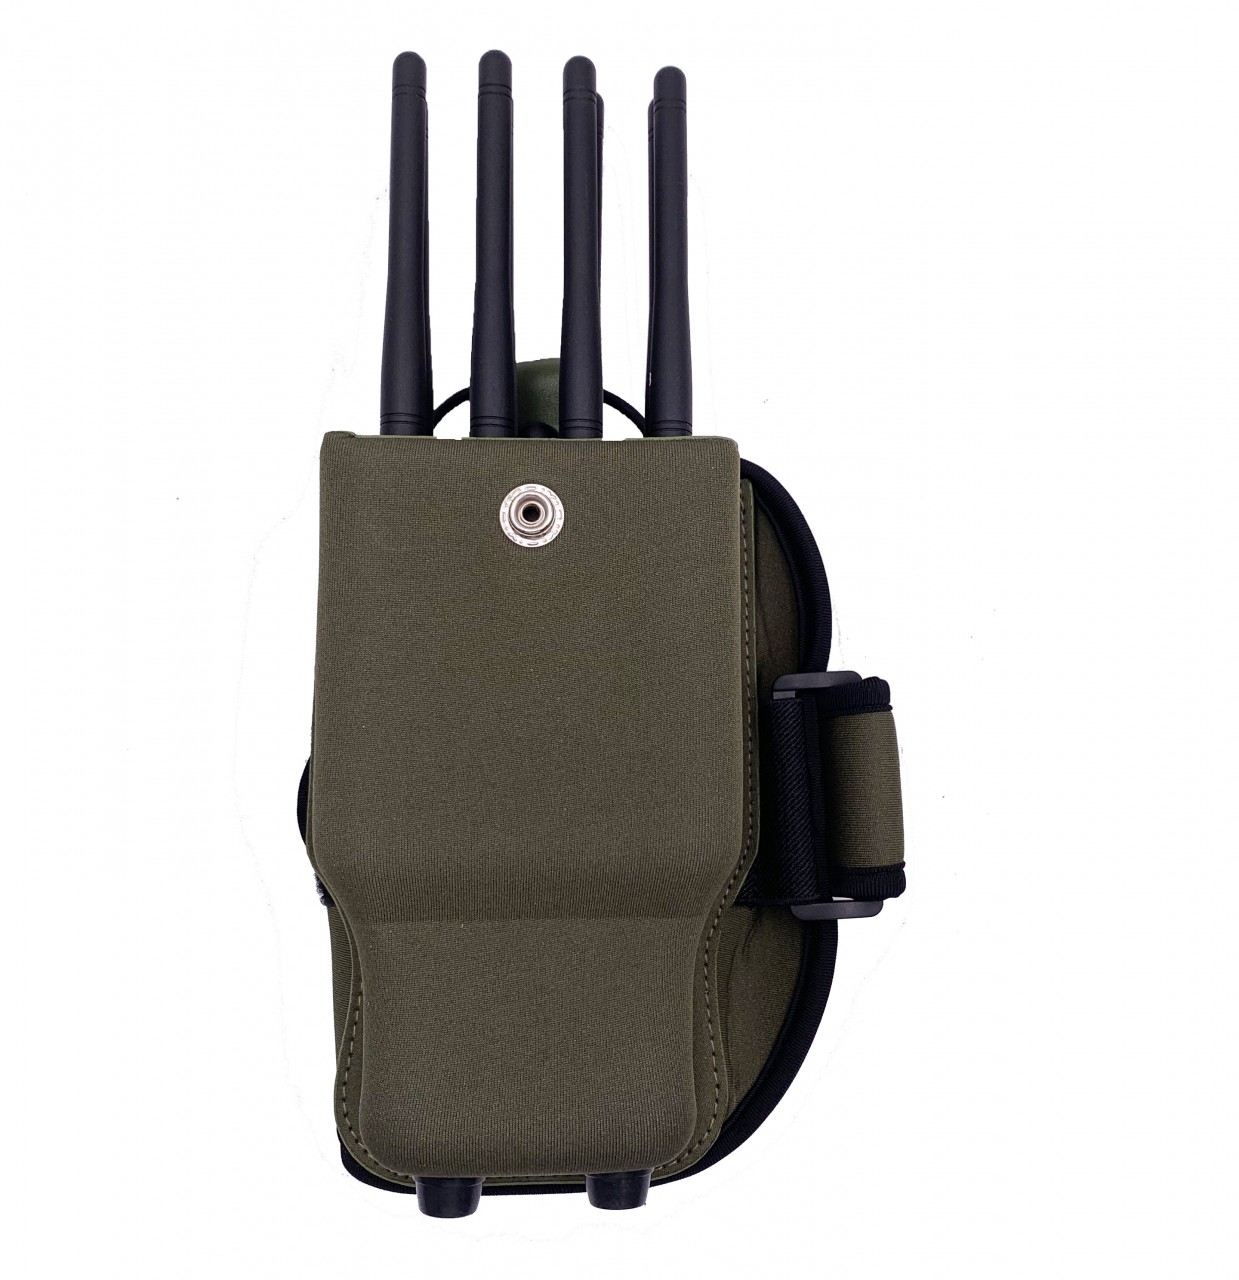 Broad spectrum mobile phone signal jammer - Selectable Portable GPS Lojack 3G Cell Phone Signal Jammer